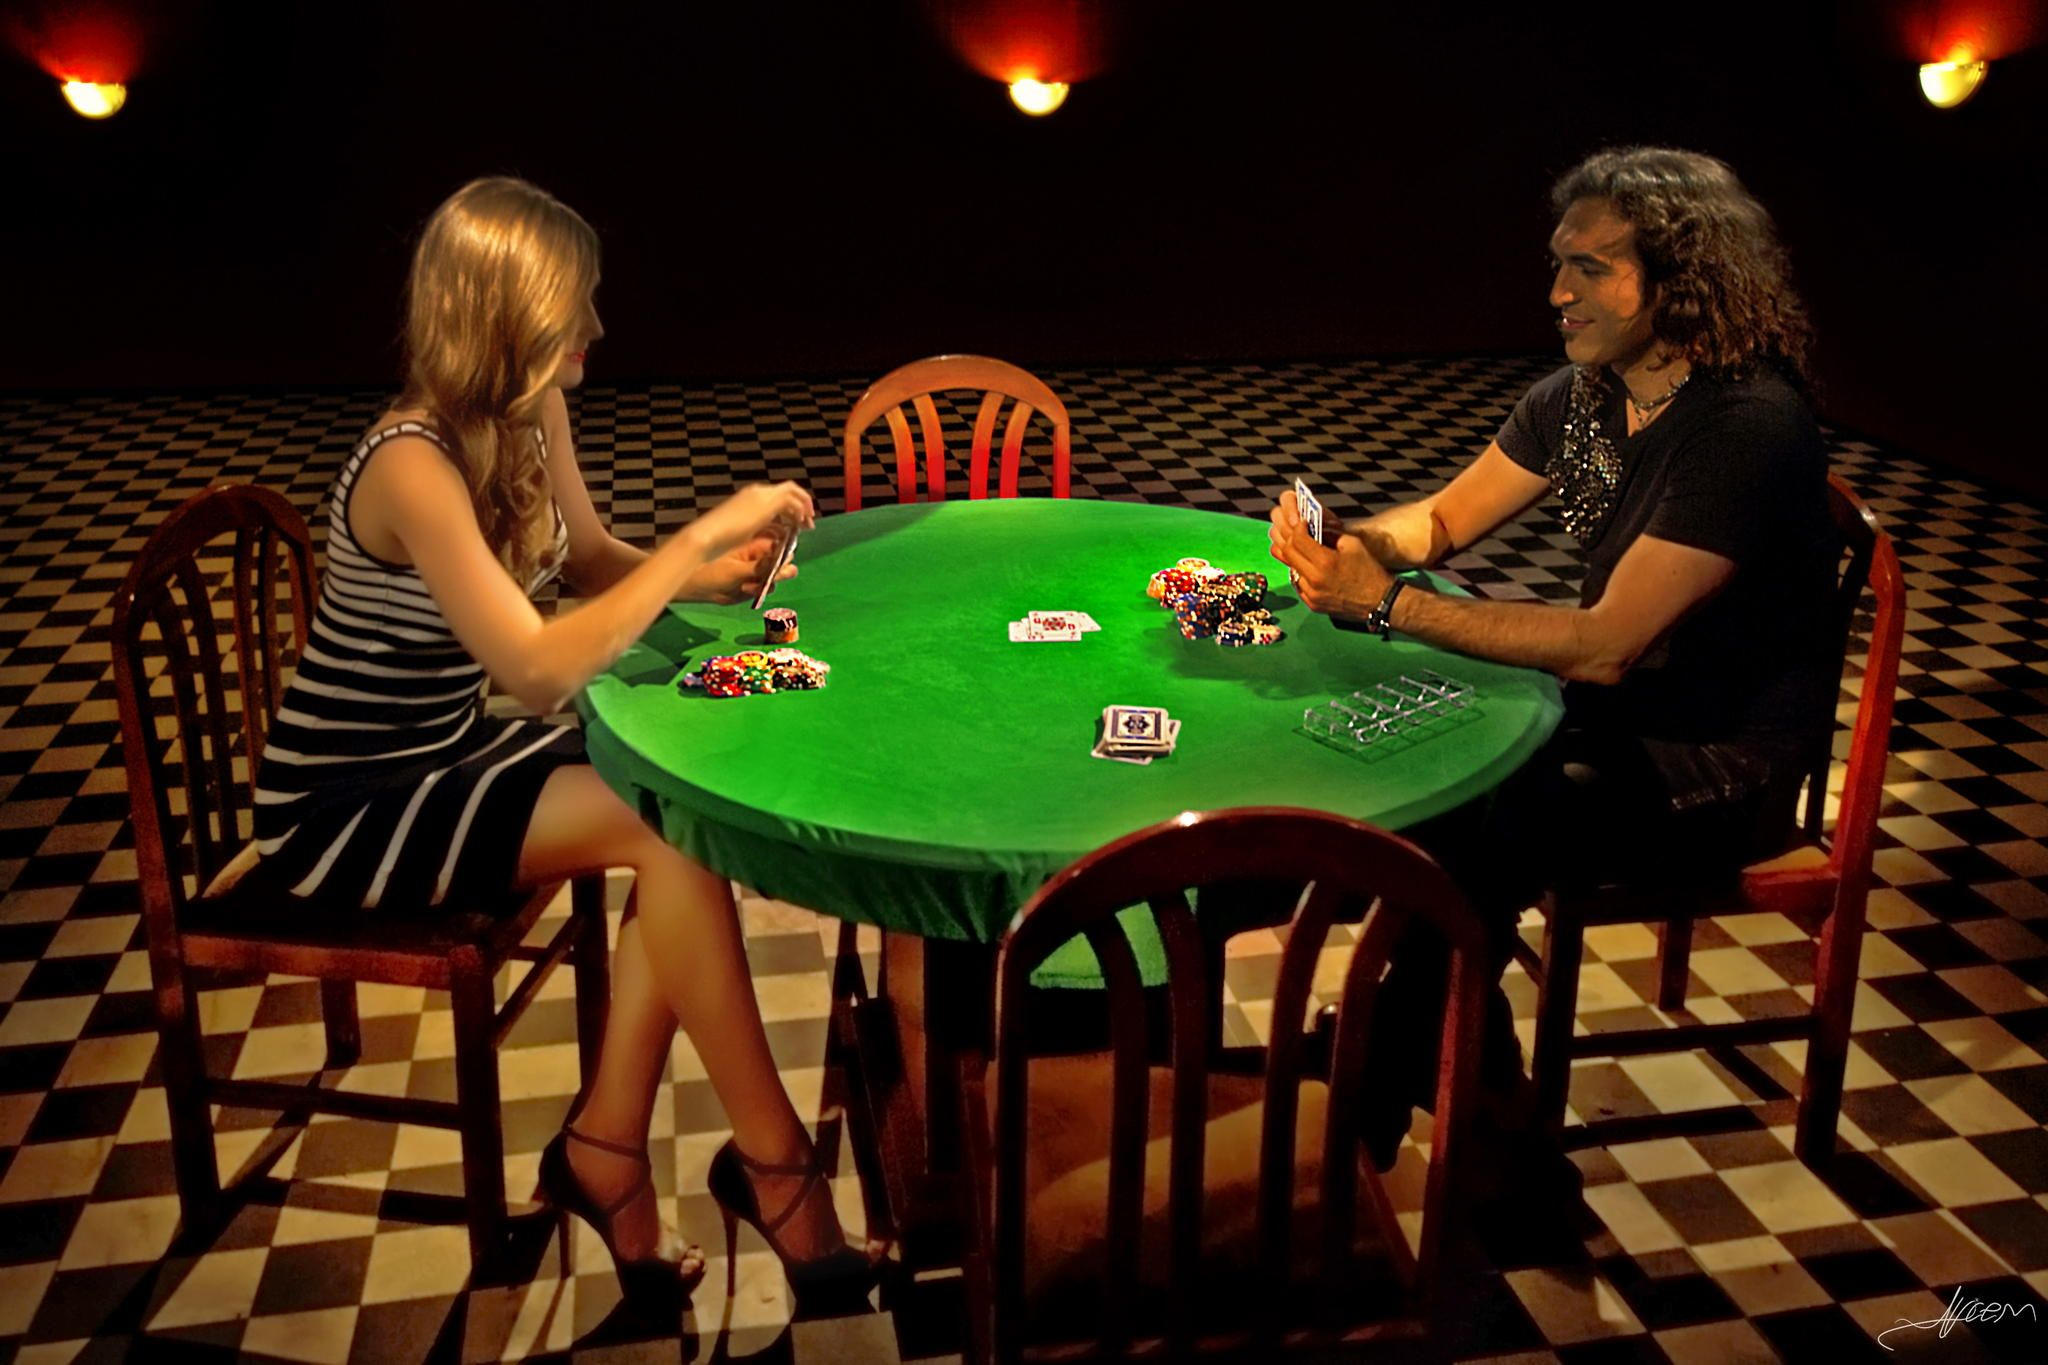 Play online poker games for real money. Claim your poker